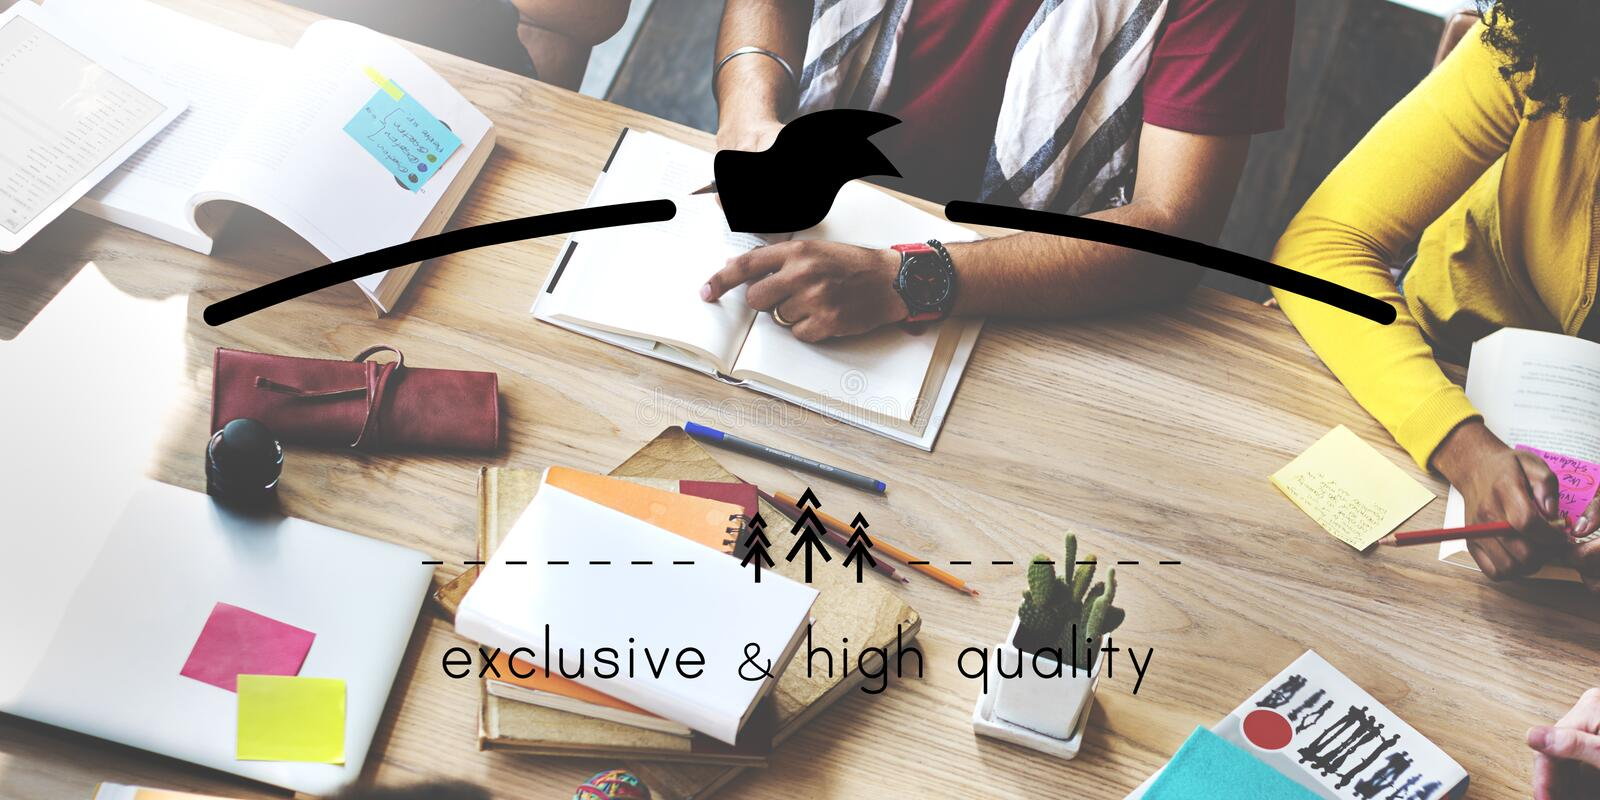 Exclusive and High Quality Brand Markeing Copy Space Concept stock photography